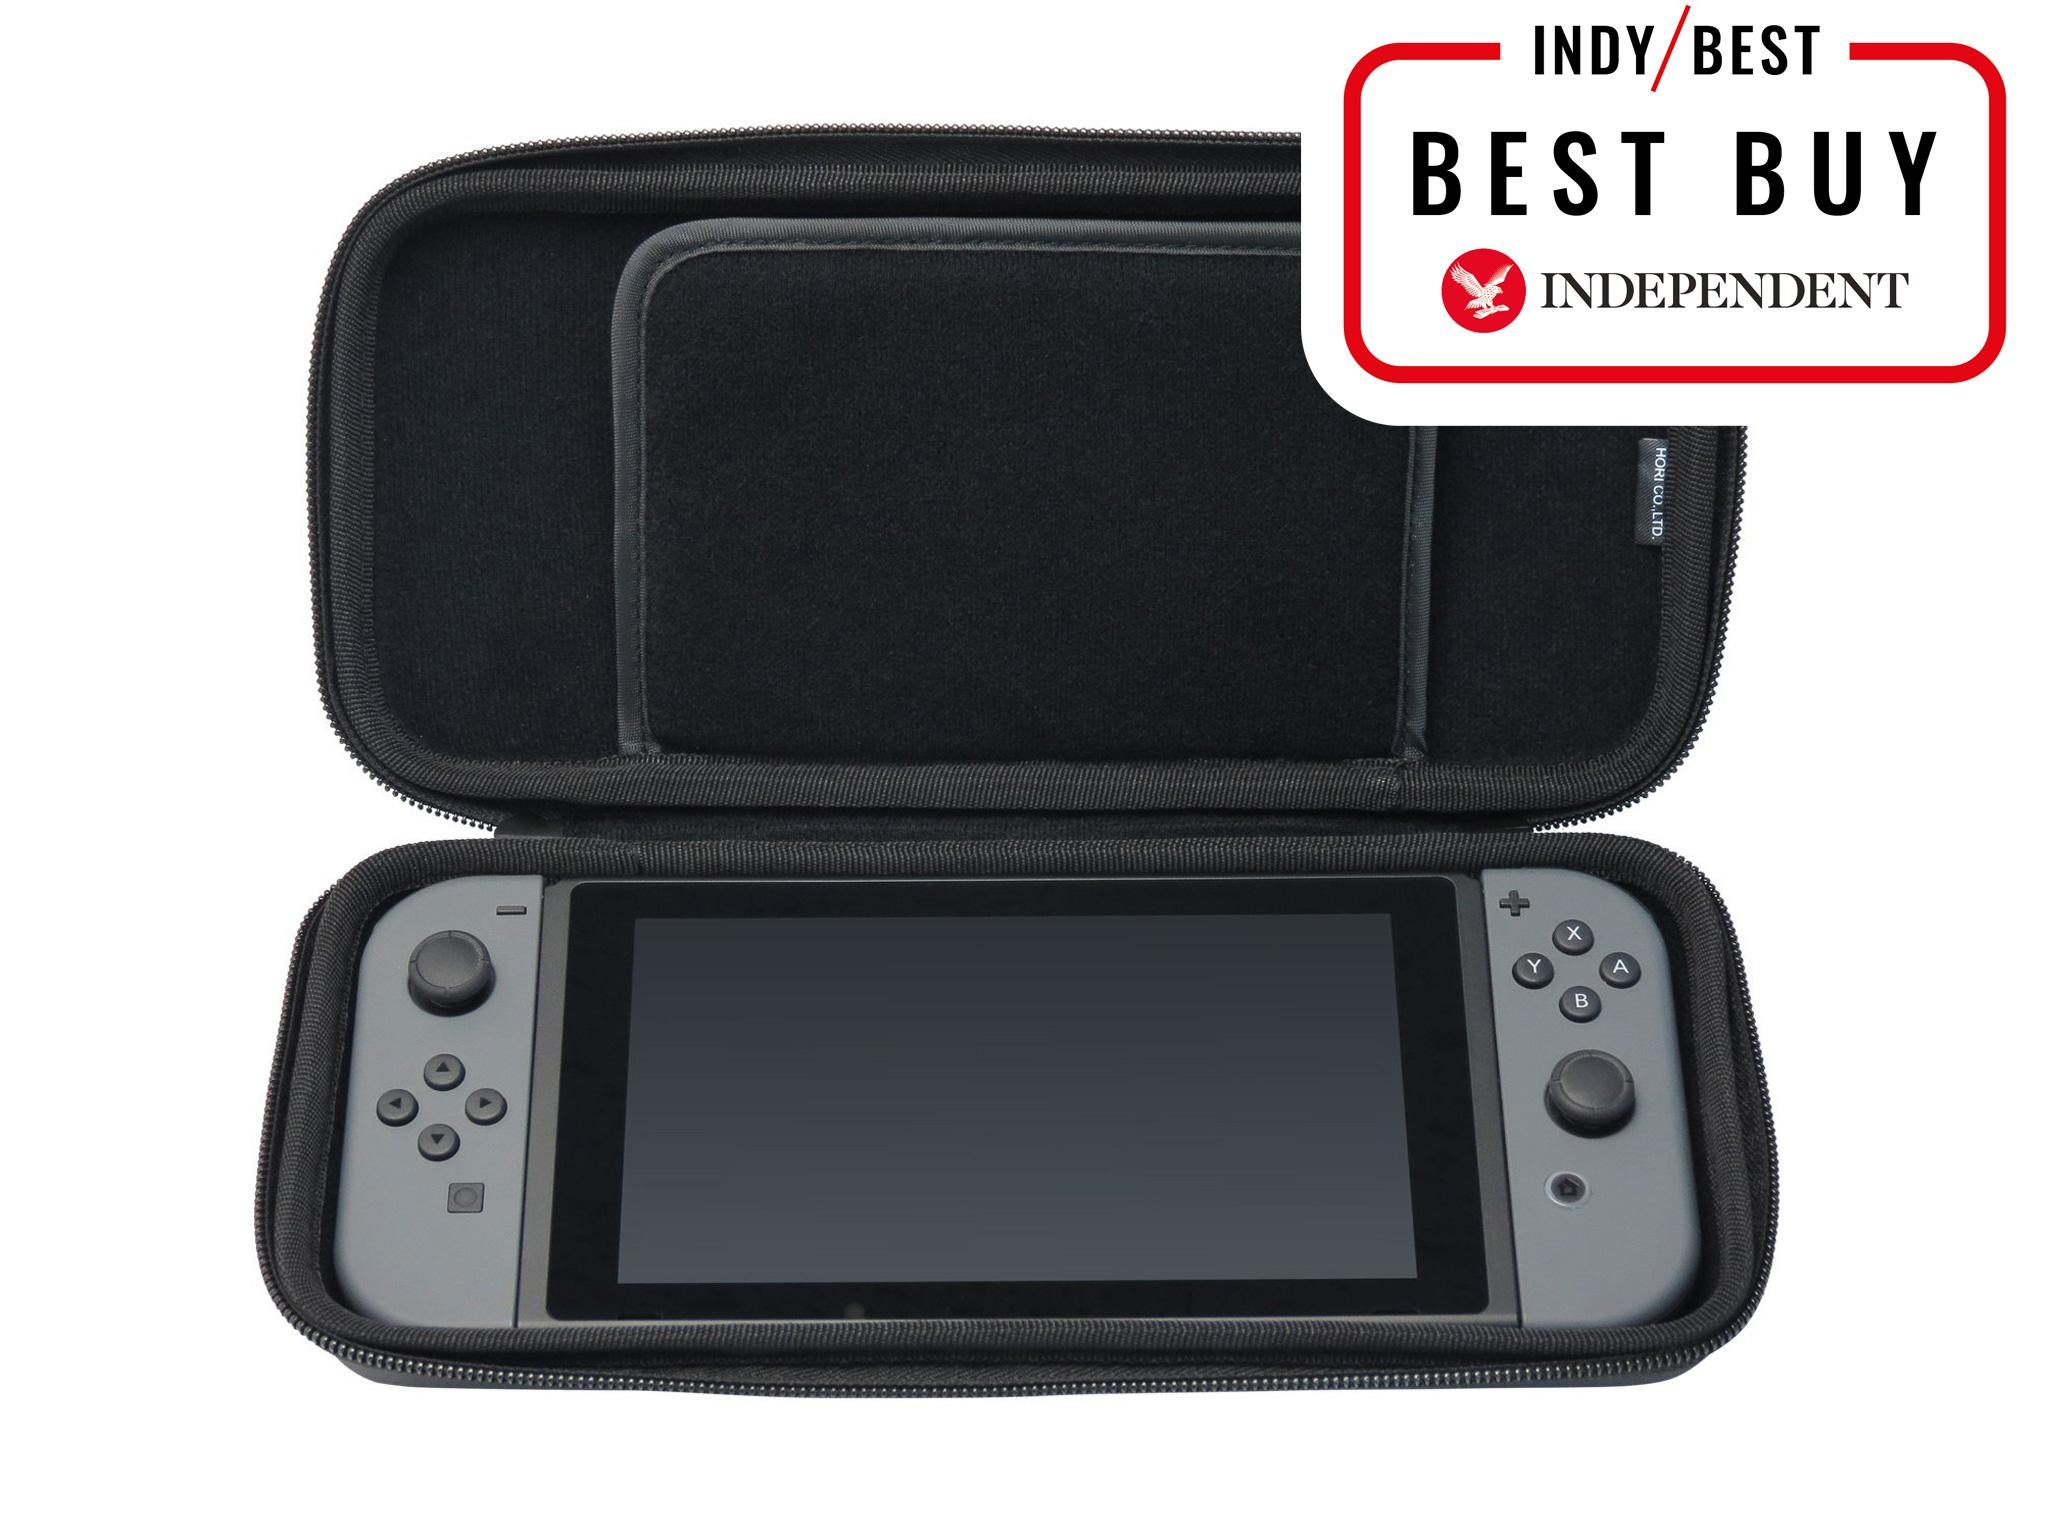 10 Best Nintendo Switch Accessories The Independent Acrylic Wiring Box Hori Tough Case 14 Amazon